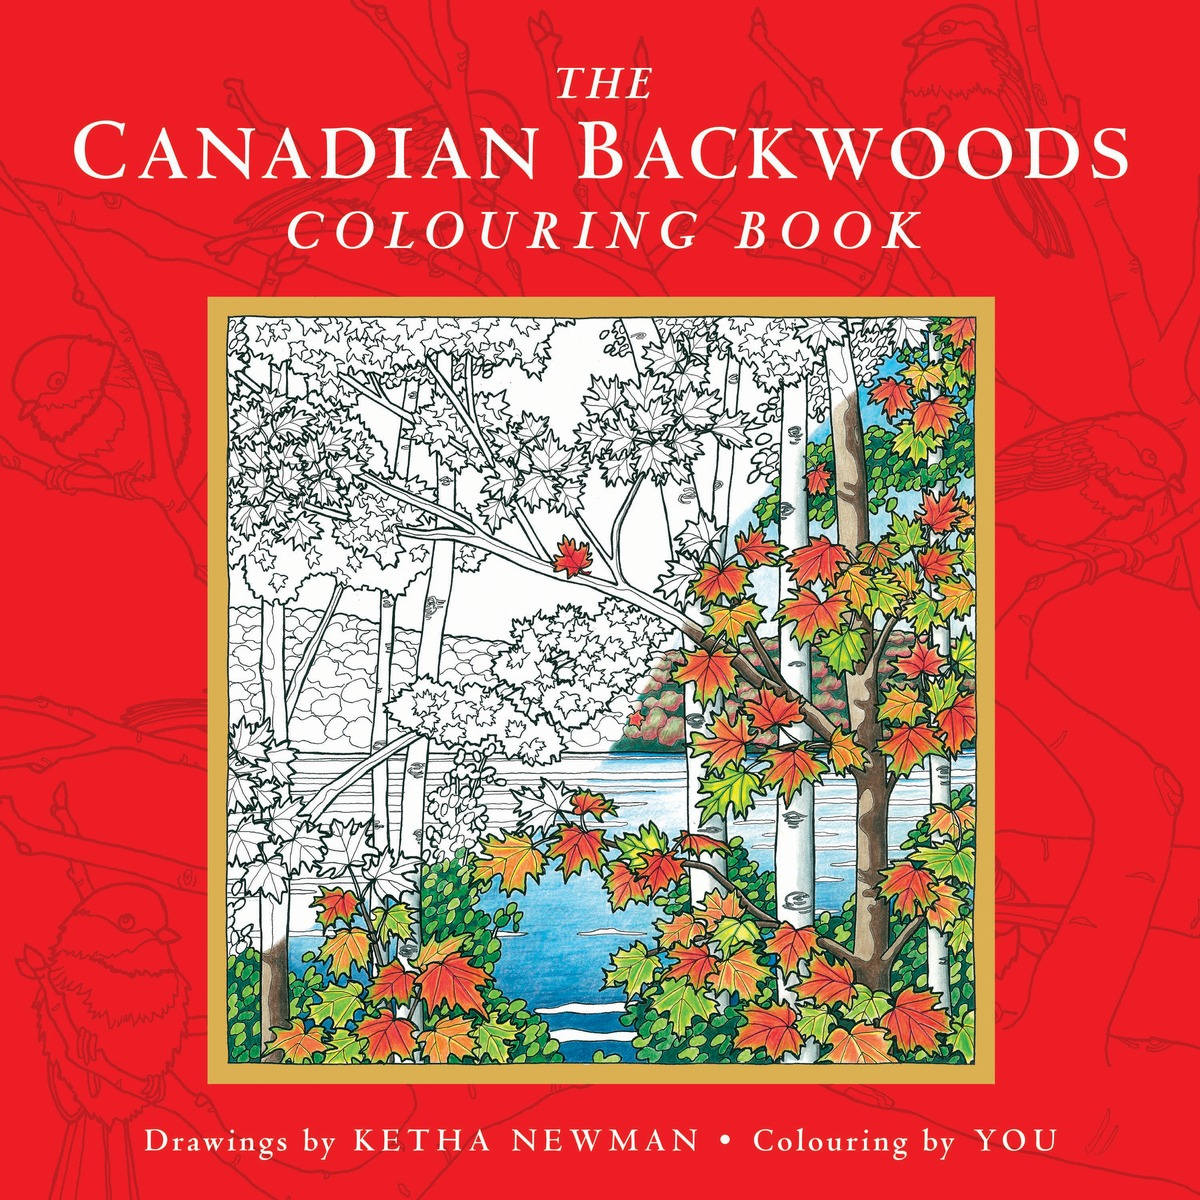 The Canadian Backwoods Colouring Book die hard the official colouring book